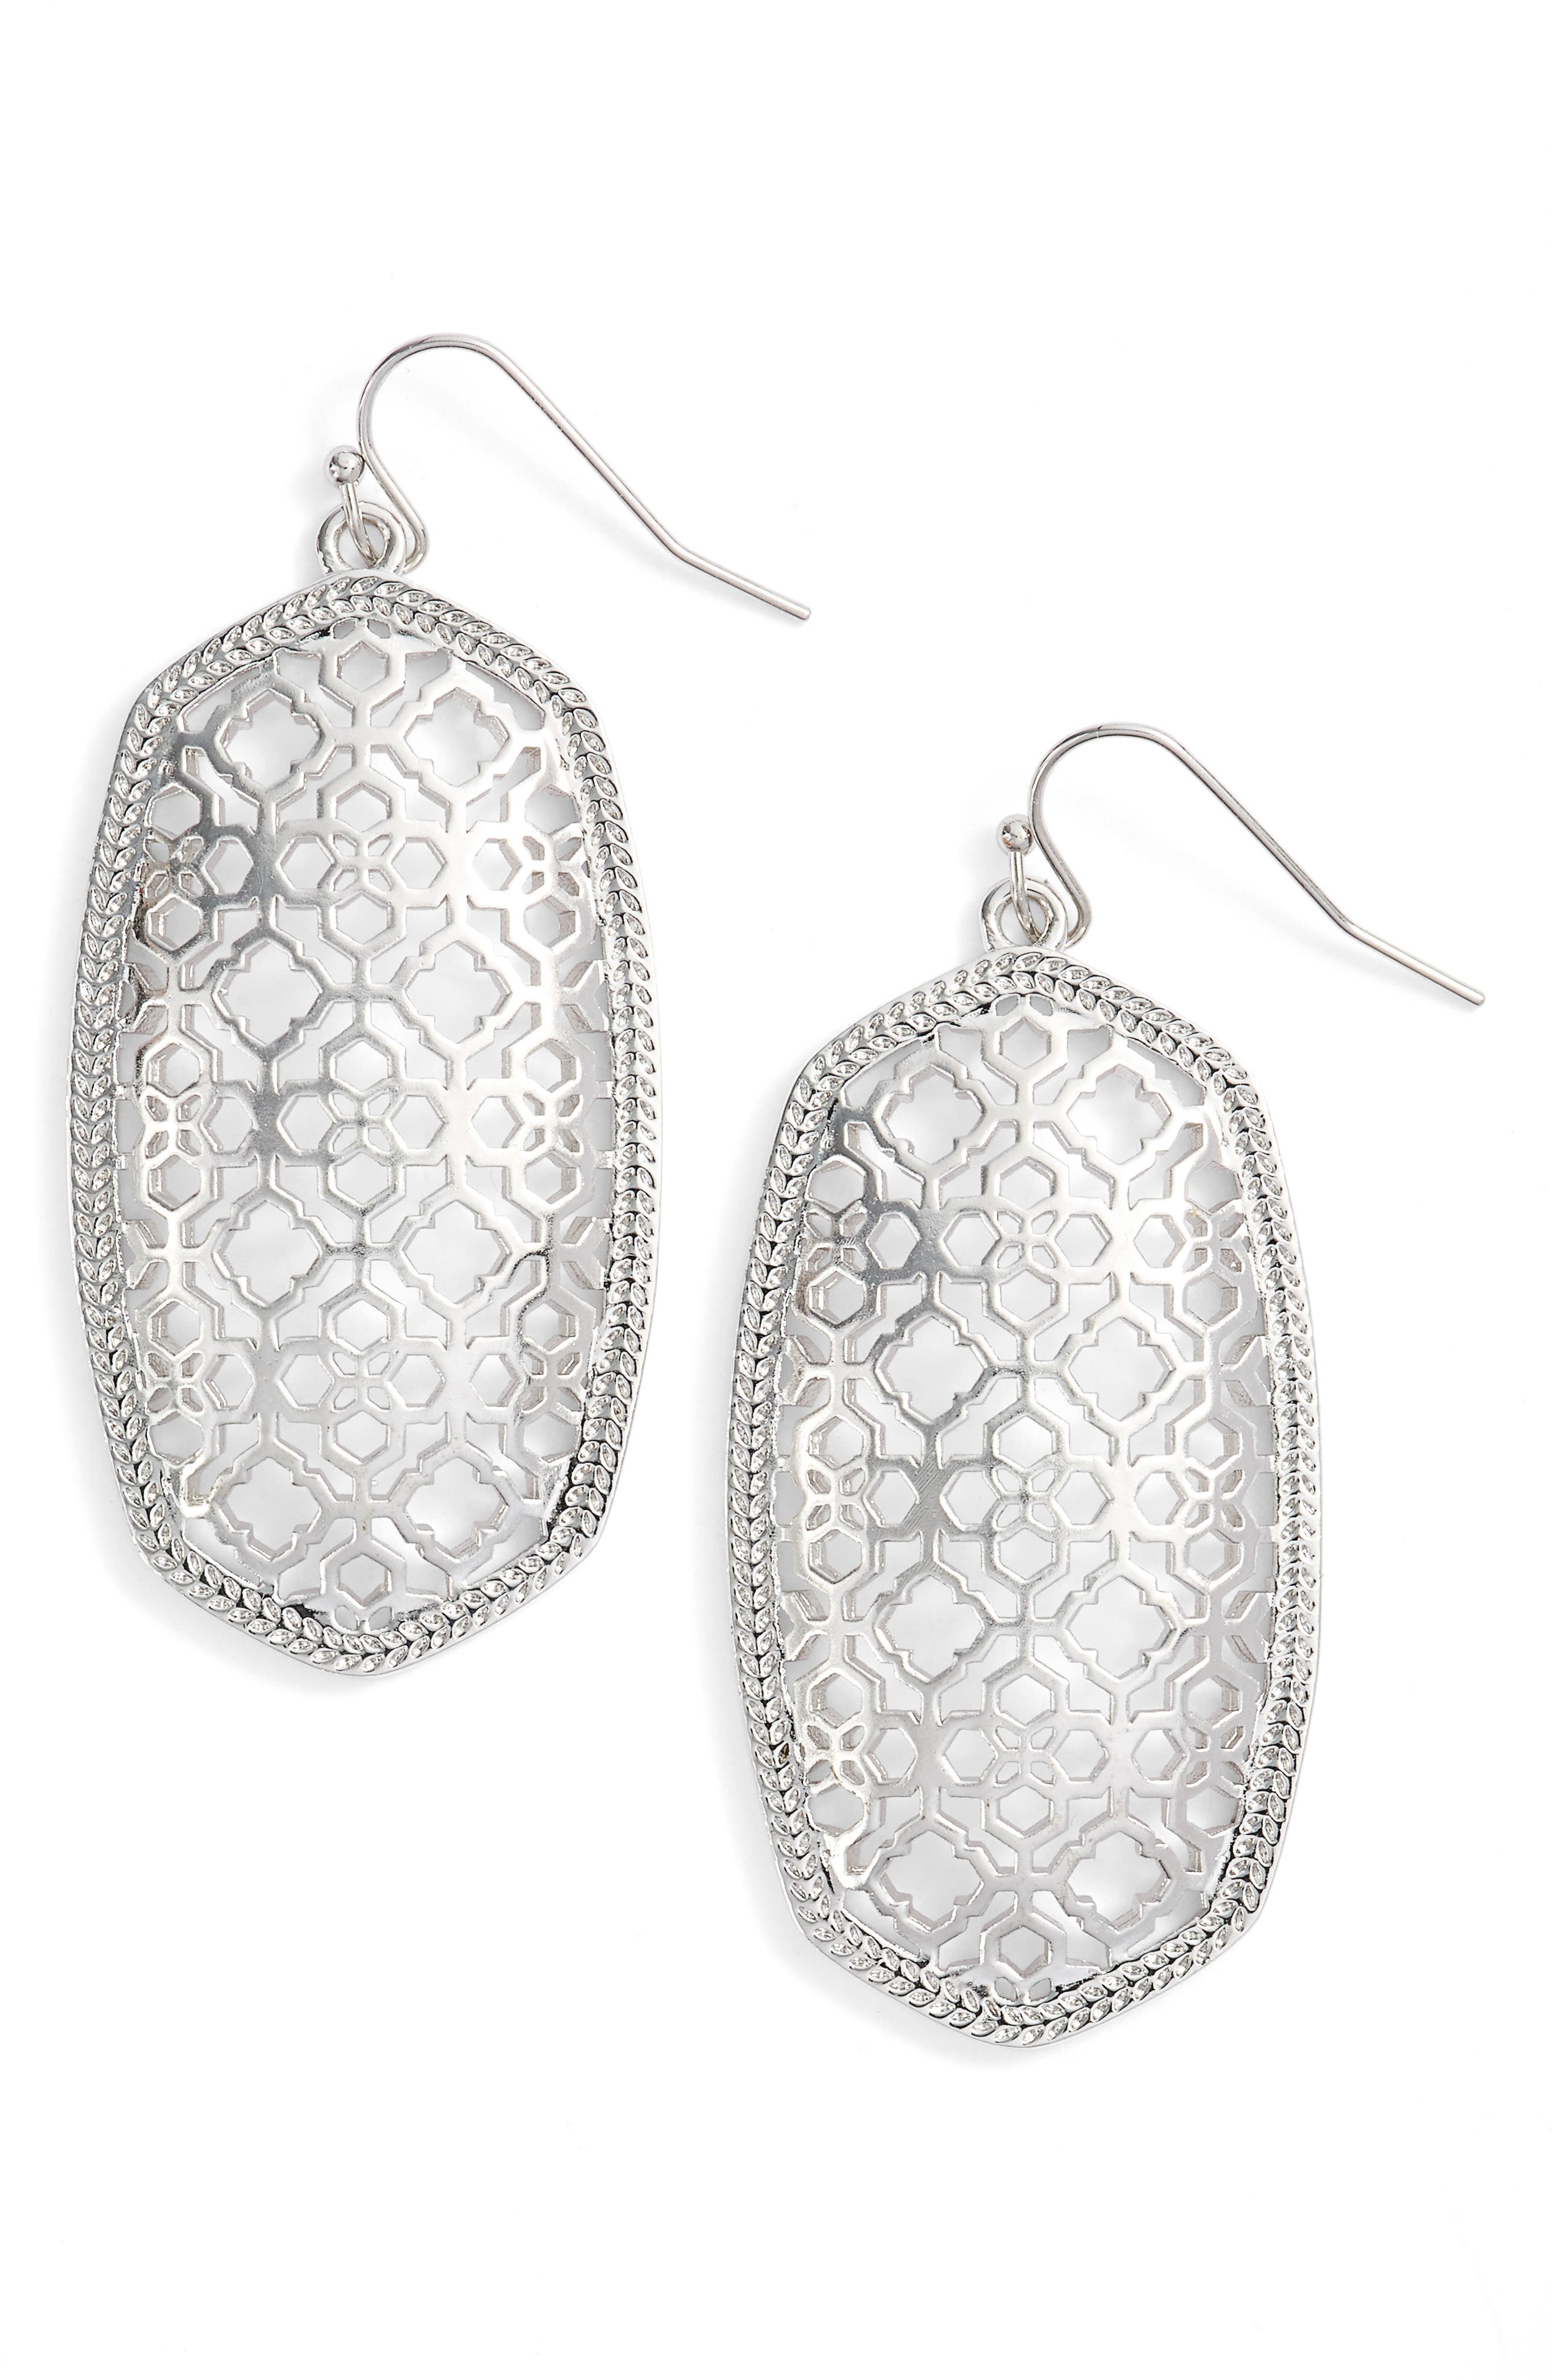 Danielle - Large Oval Statement Earrings,                             Main thumbnail 41, color,